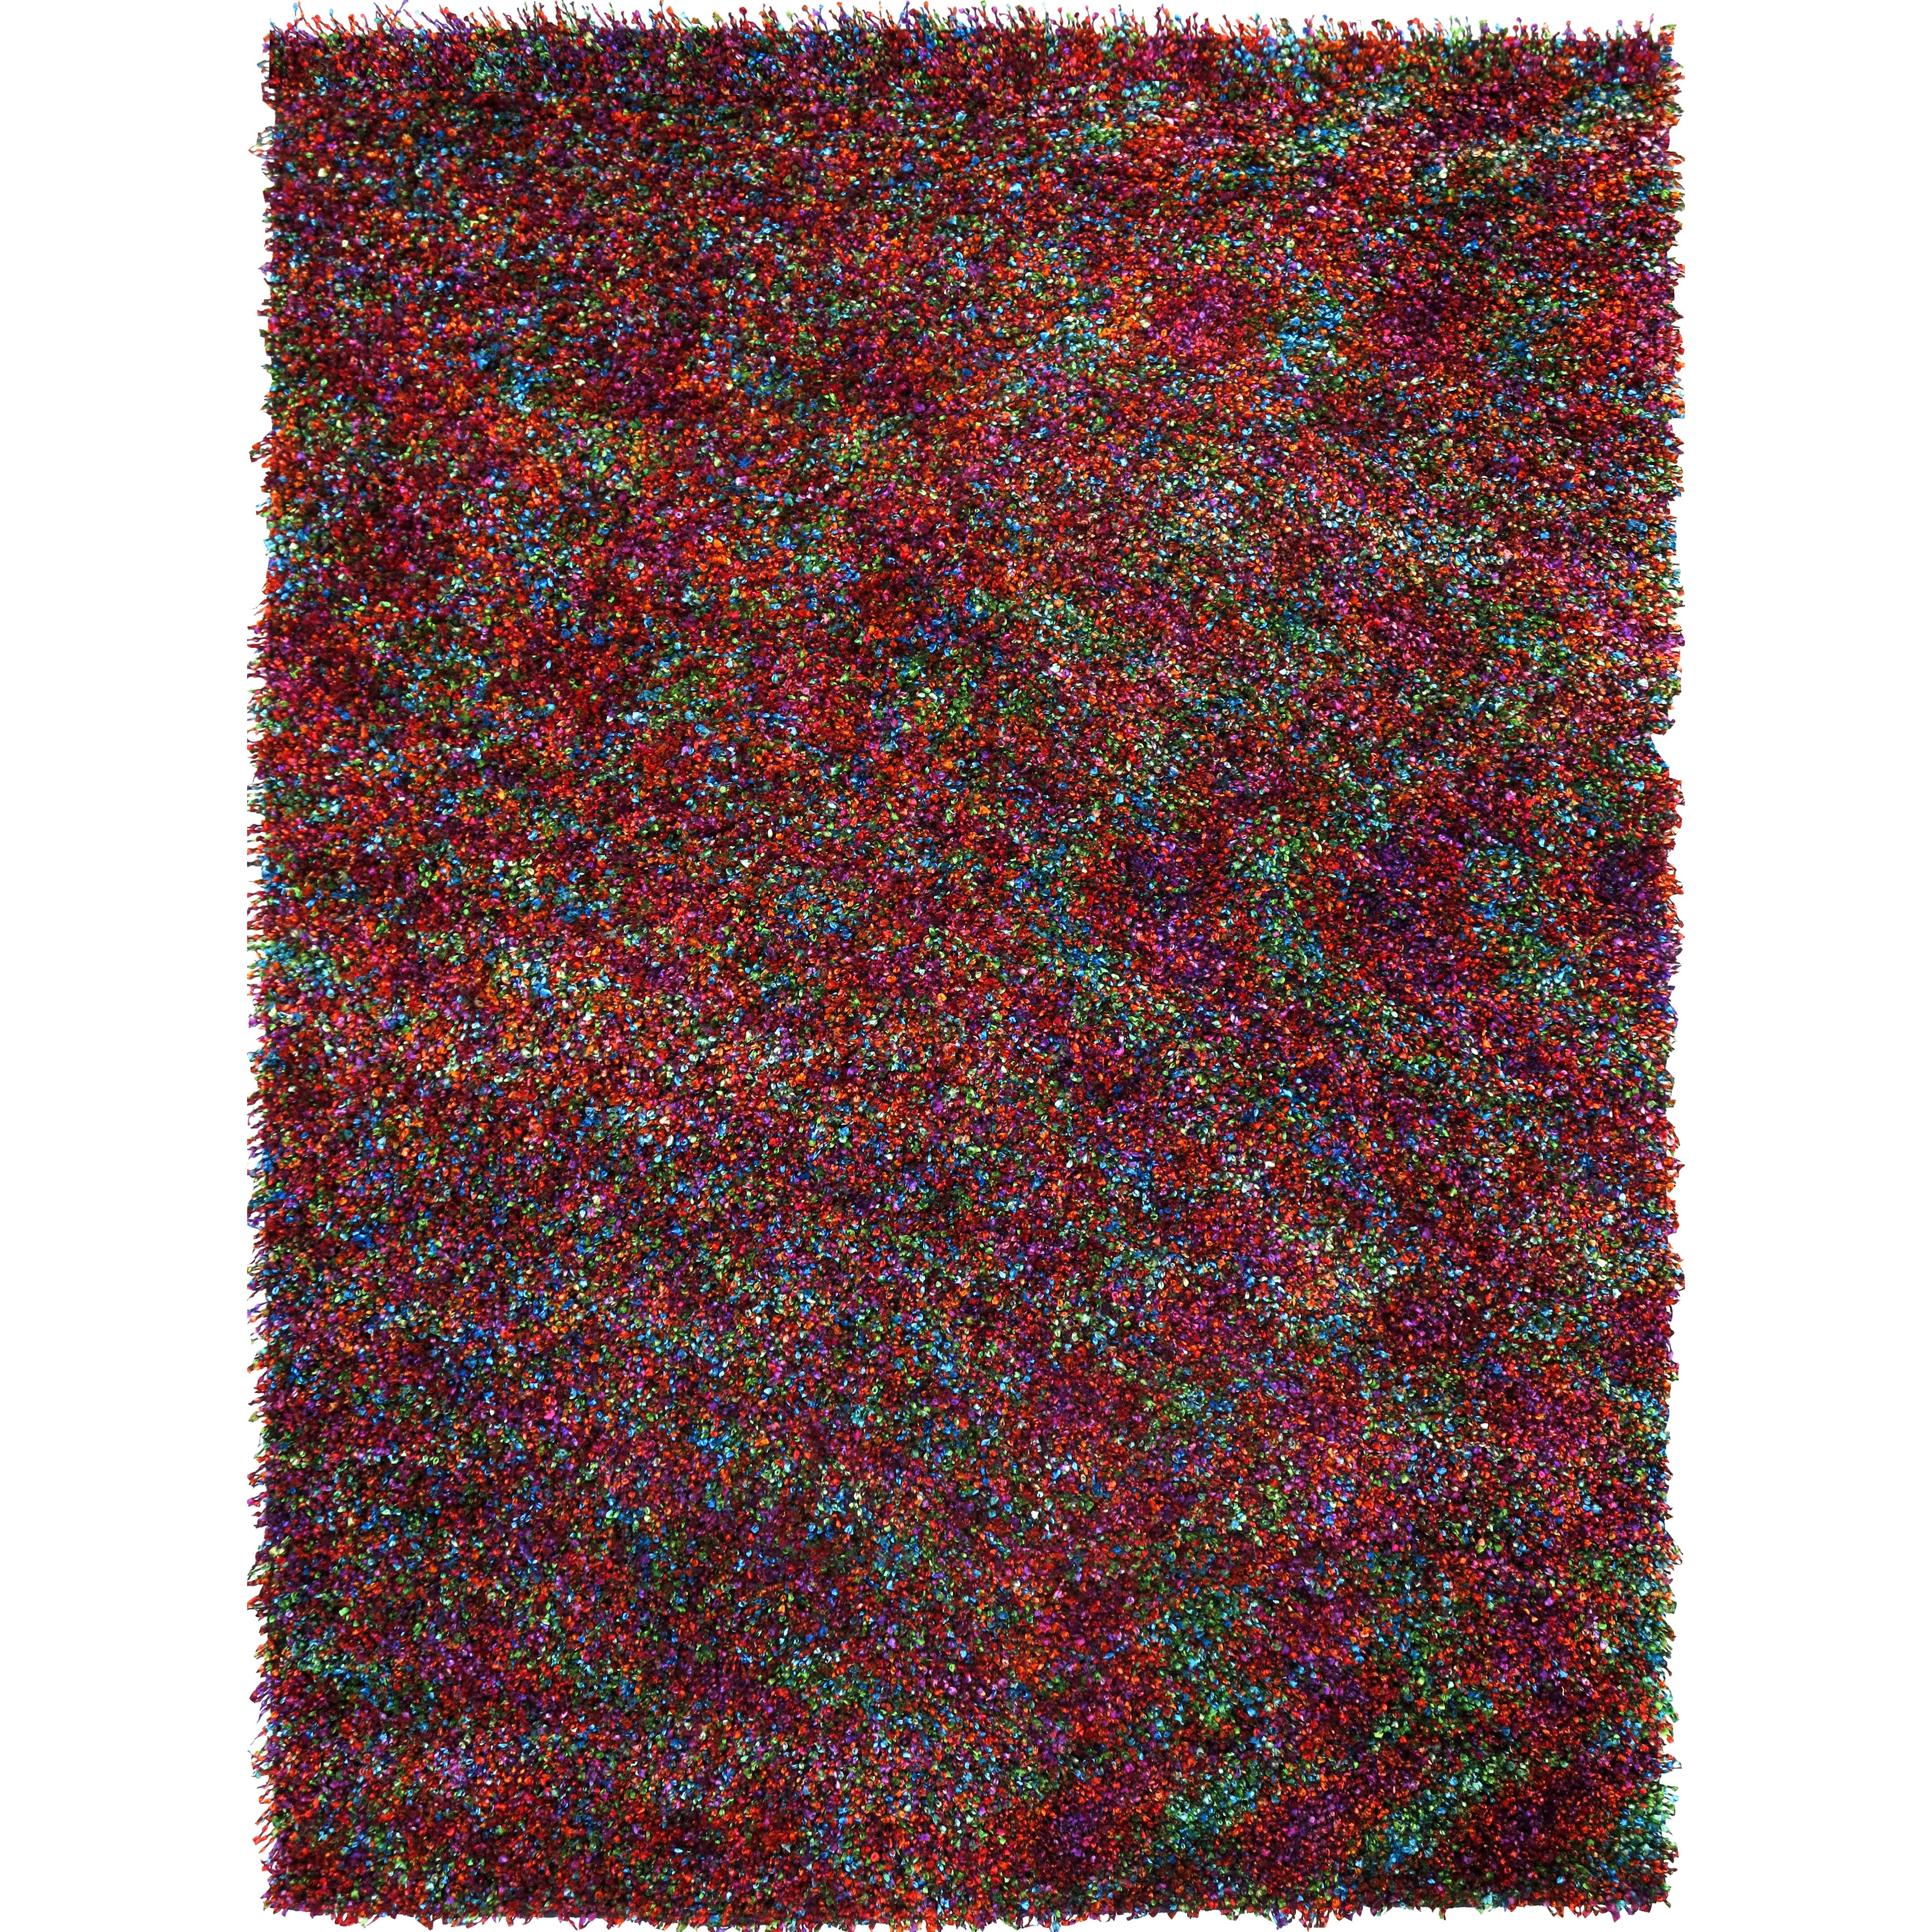 Foreign Accents Starburst Rainbow Area Rug